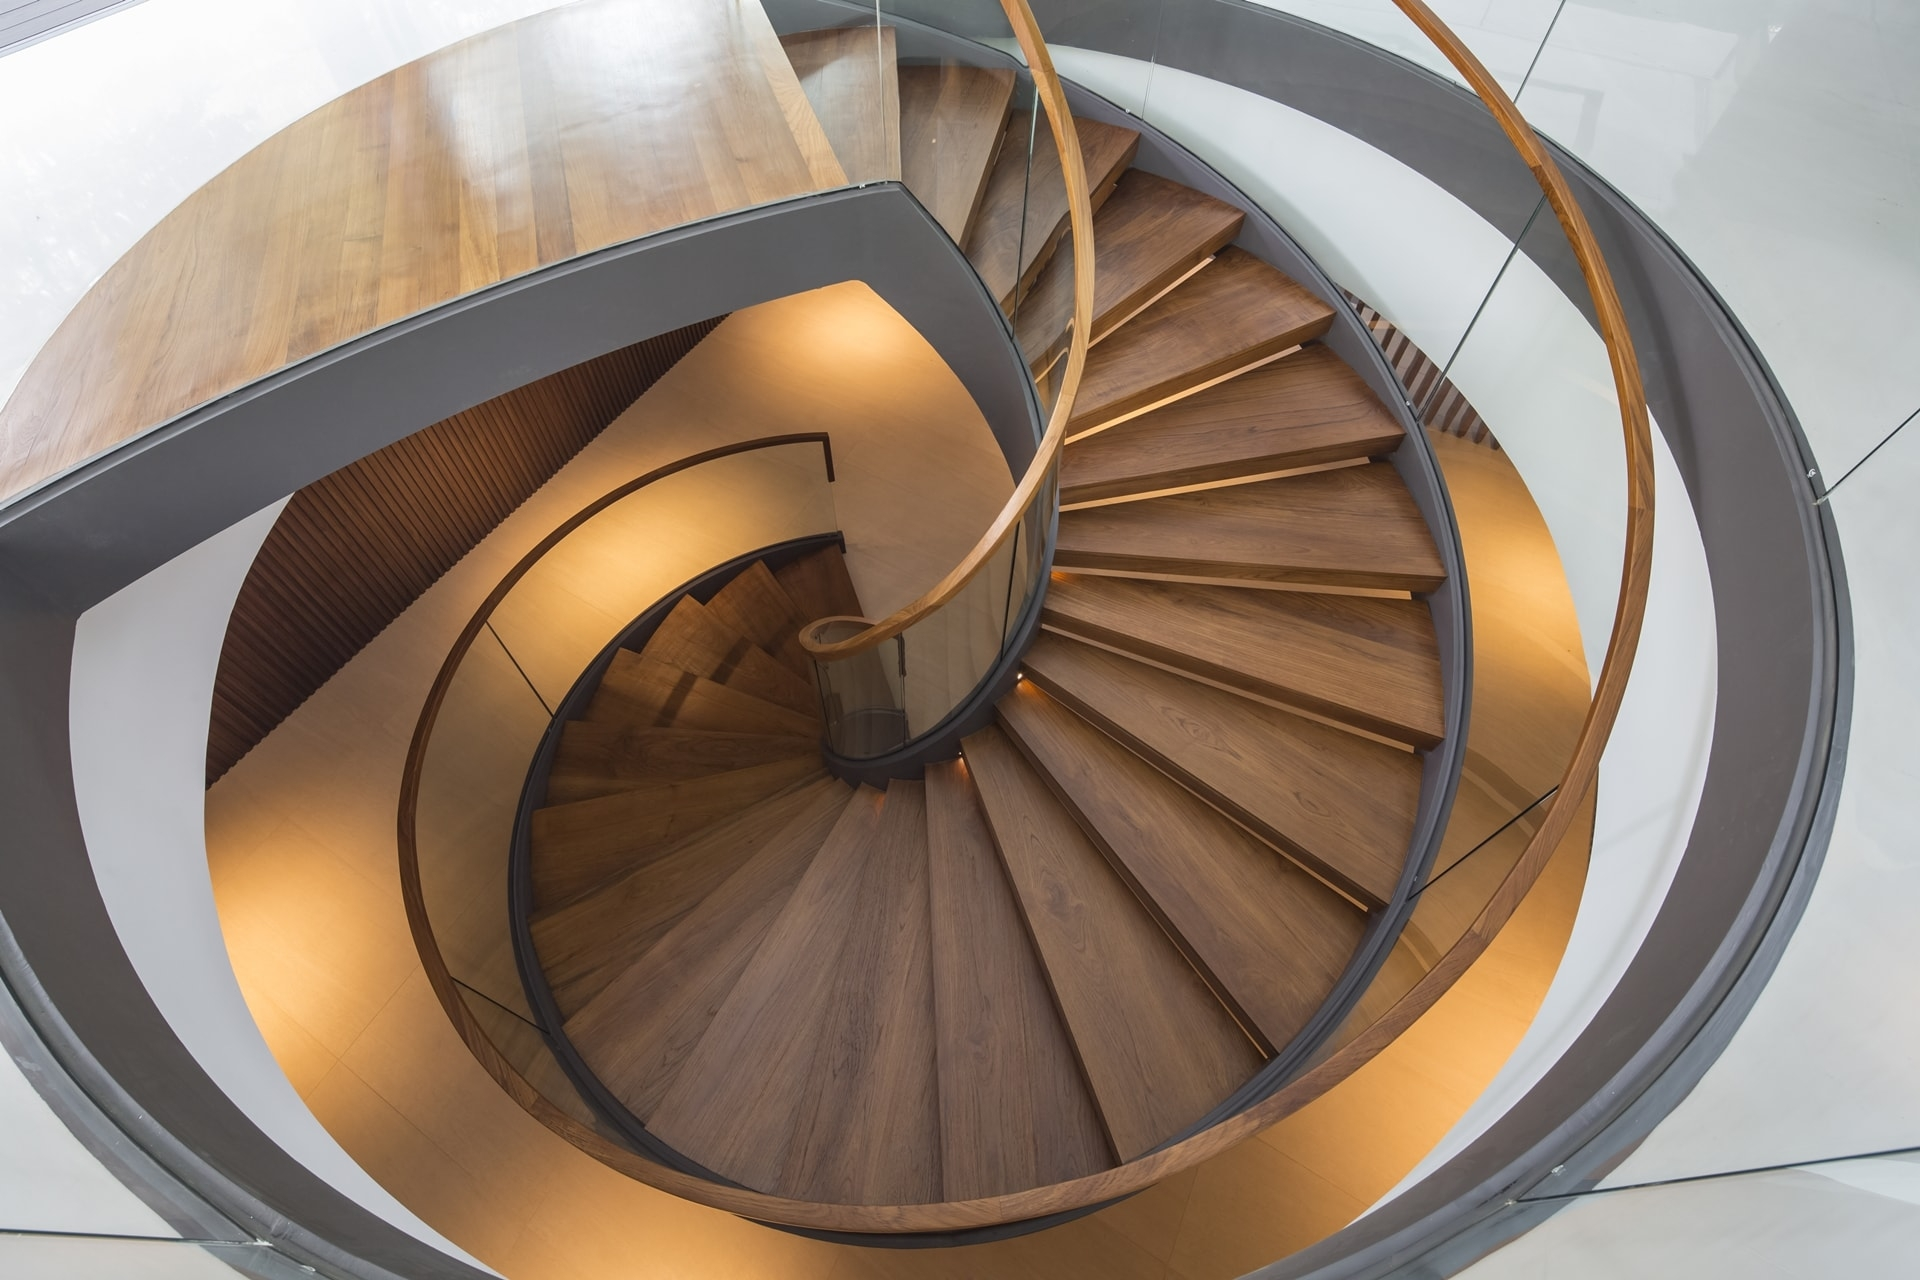 Top 10 Best Spiral Staircase Ideas Architecture Beast   Steel Round Staircase Design   Stair Steel Grill   Top Floor Railing   Terraced House   Semi Circular   Circle Stair